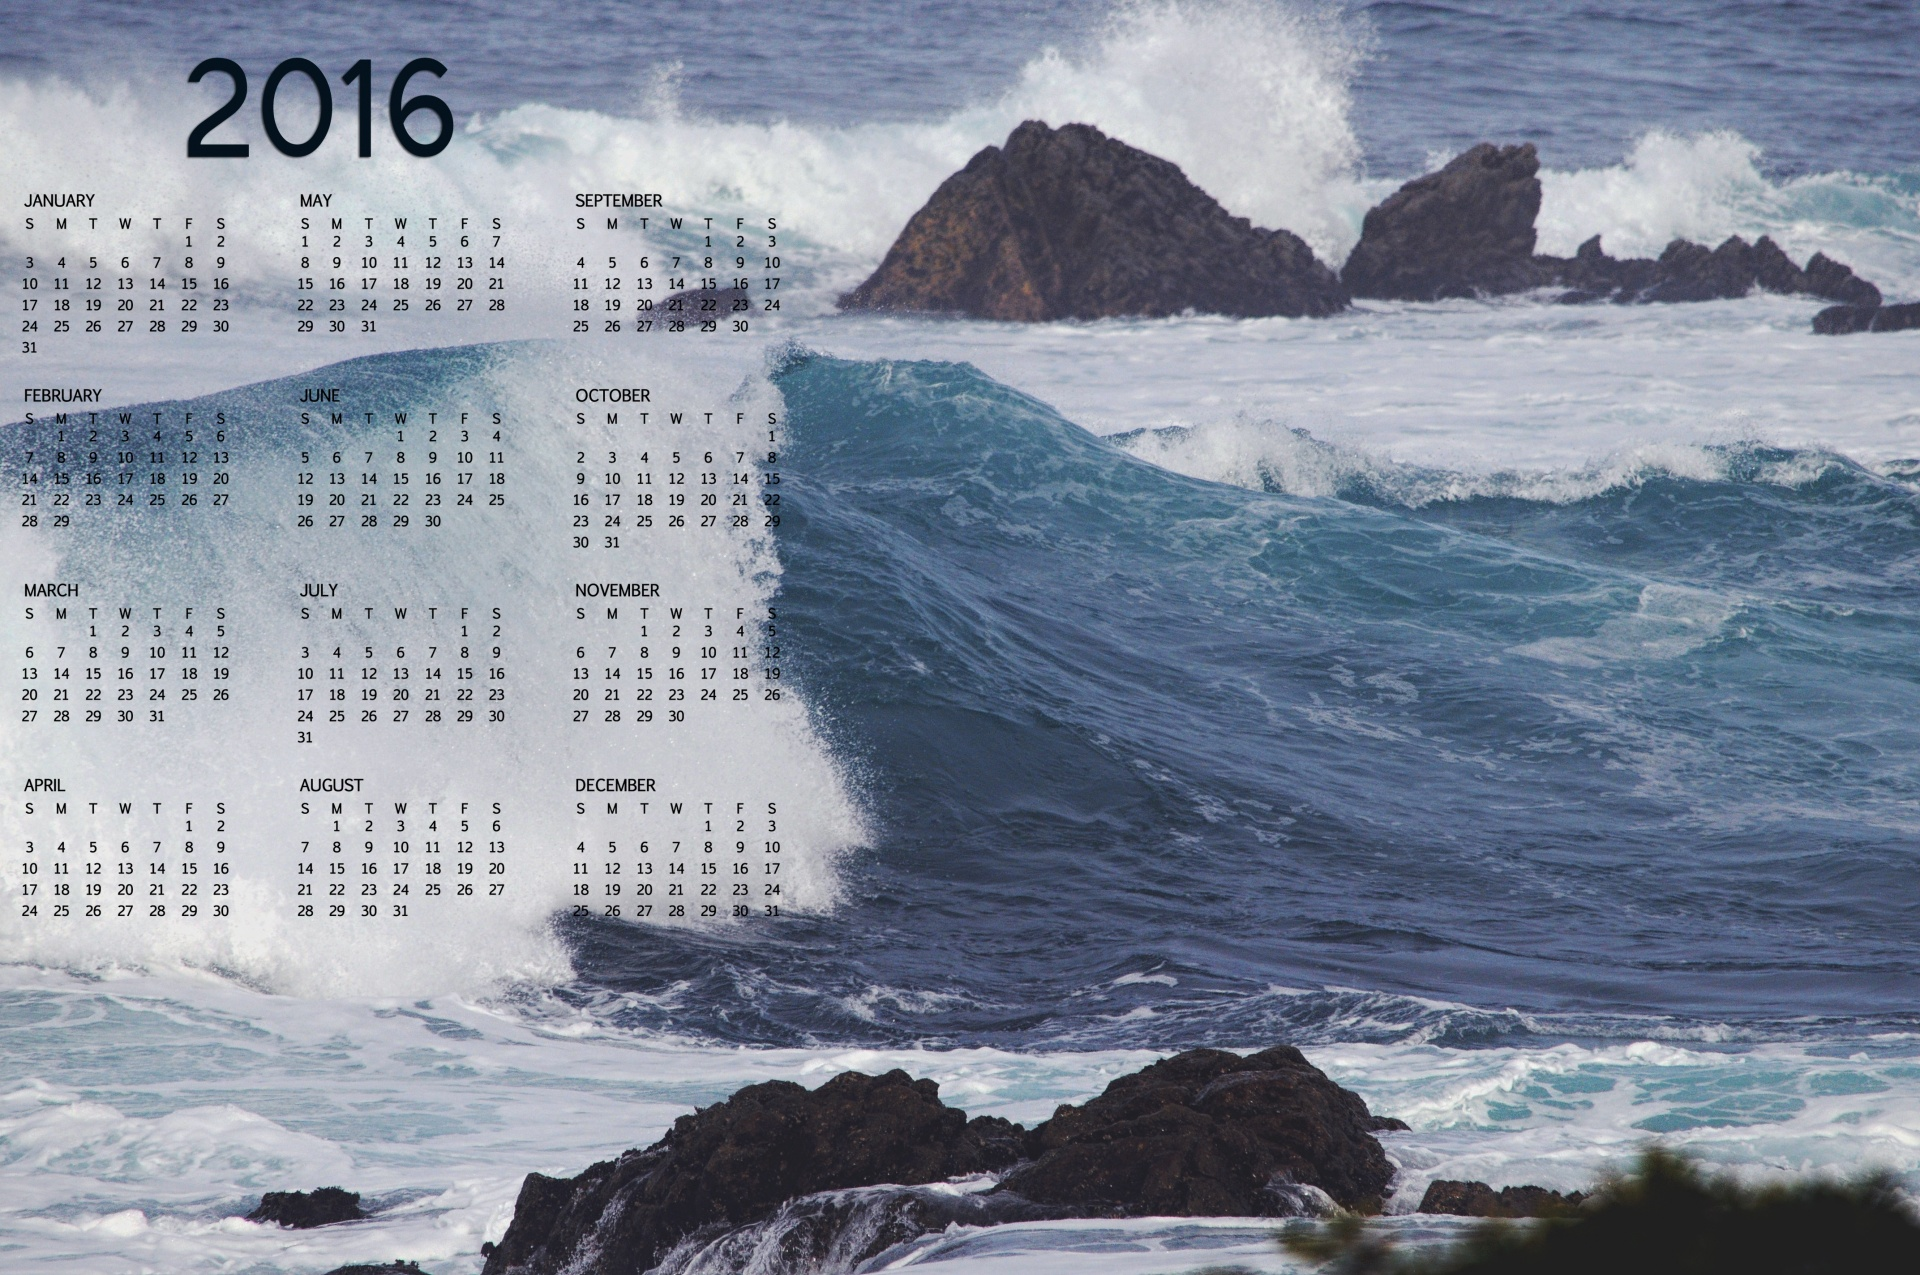 Calendar Background 2016 : Ocean wave calendar full hd wallpaper and background